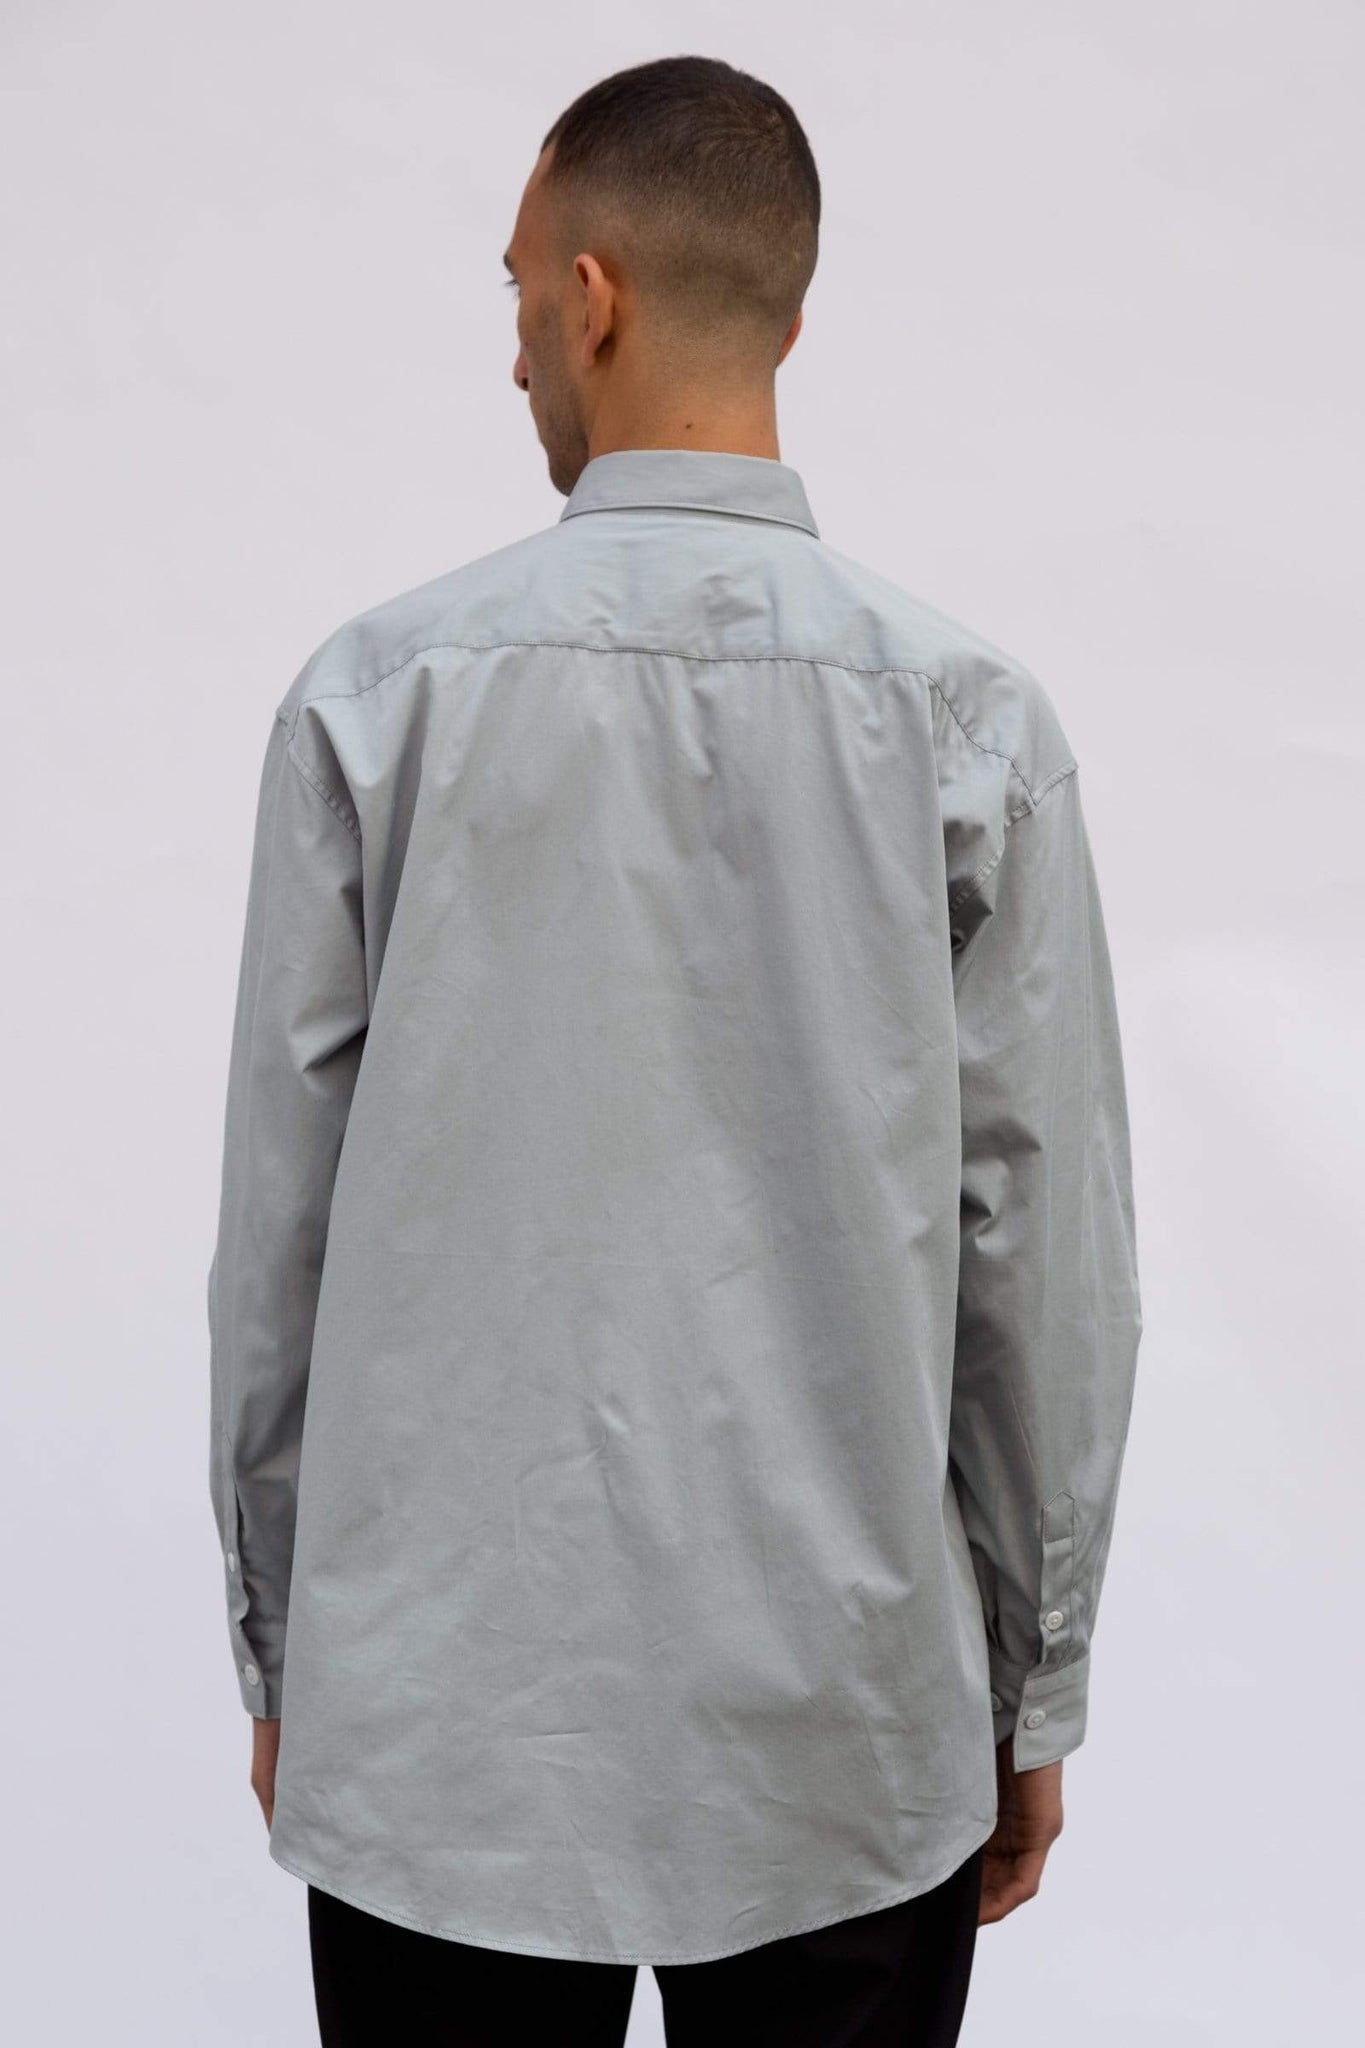 Large Fit - Light Gray